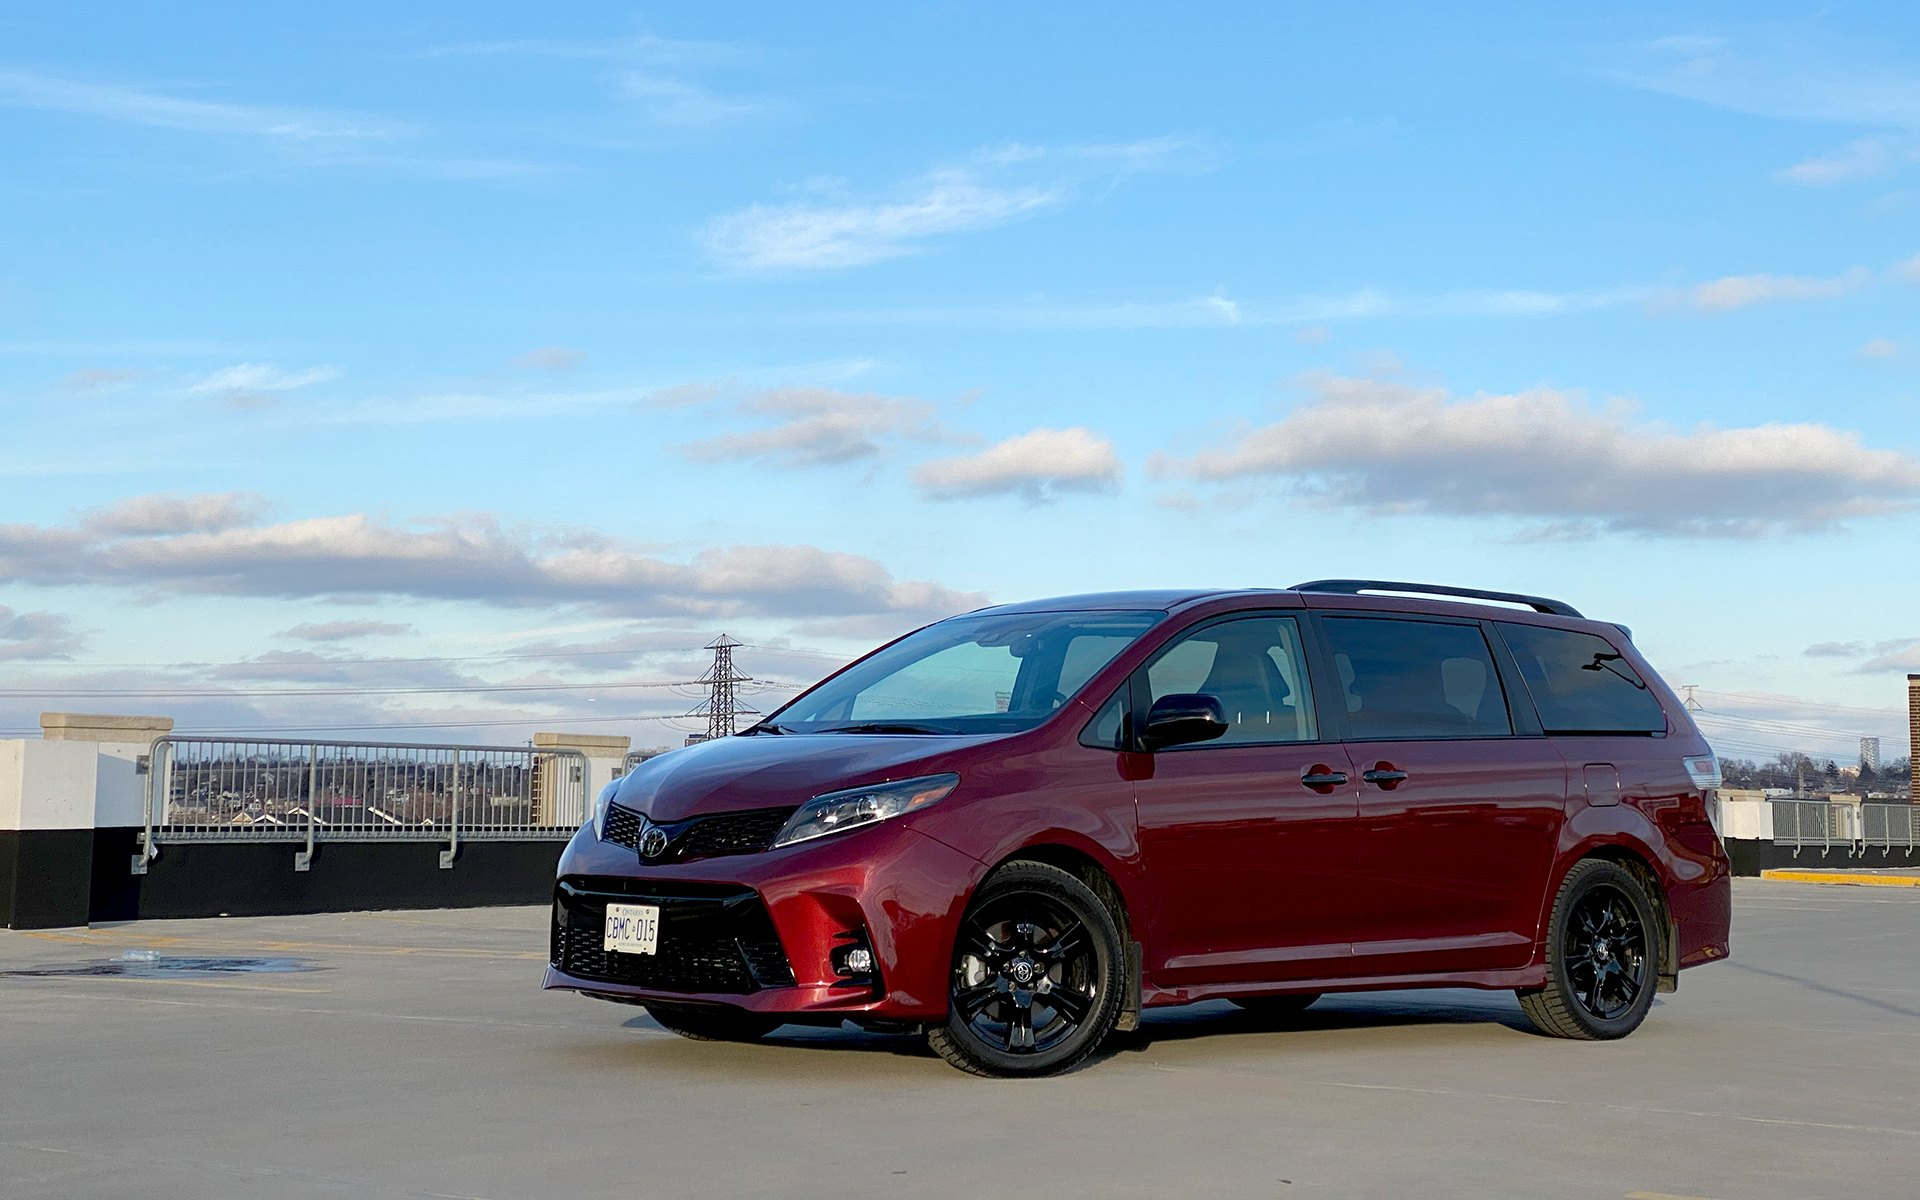 toyota sienna review specs pricing features videos and more autoguide com toyota sienna review specs pricing